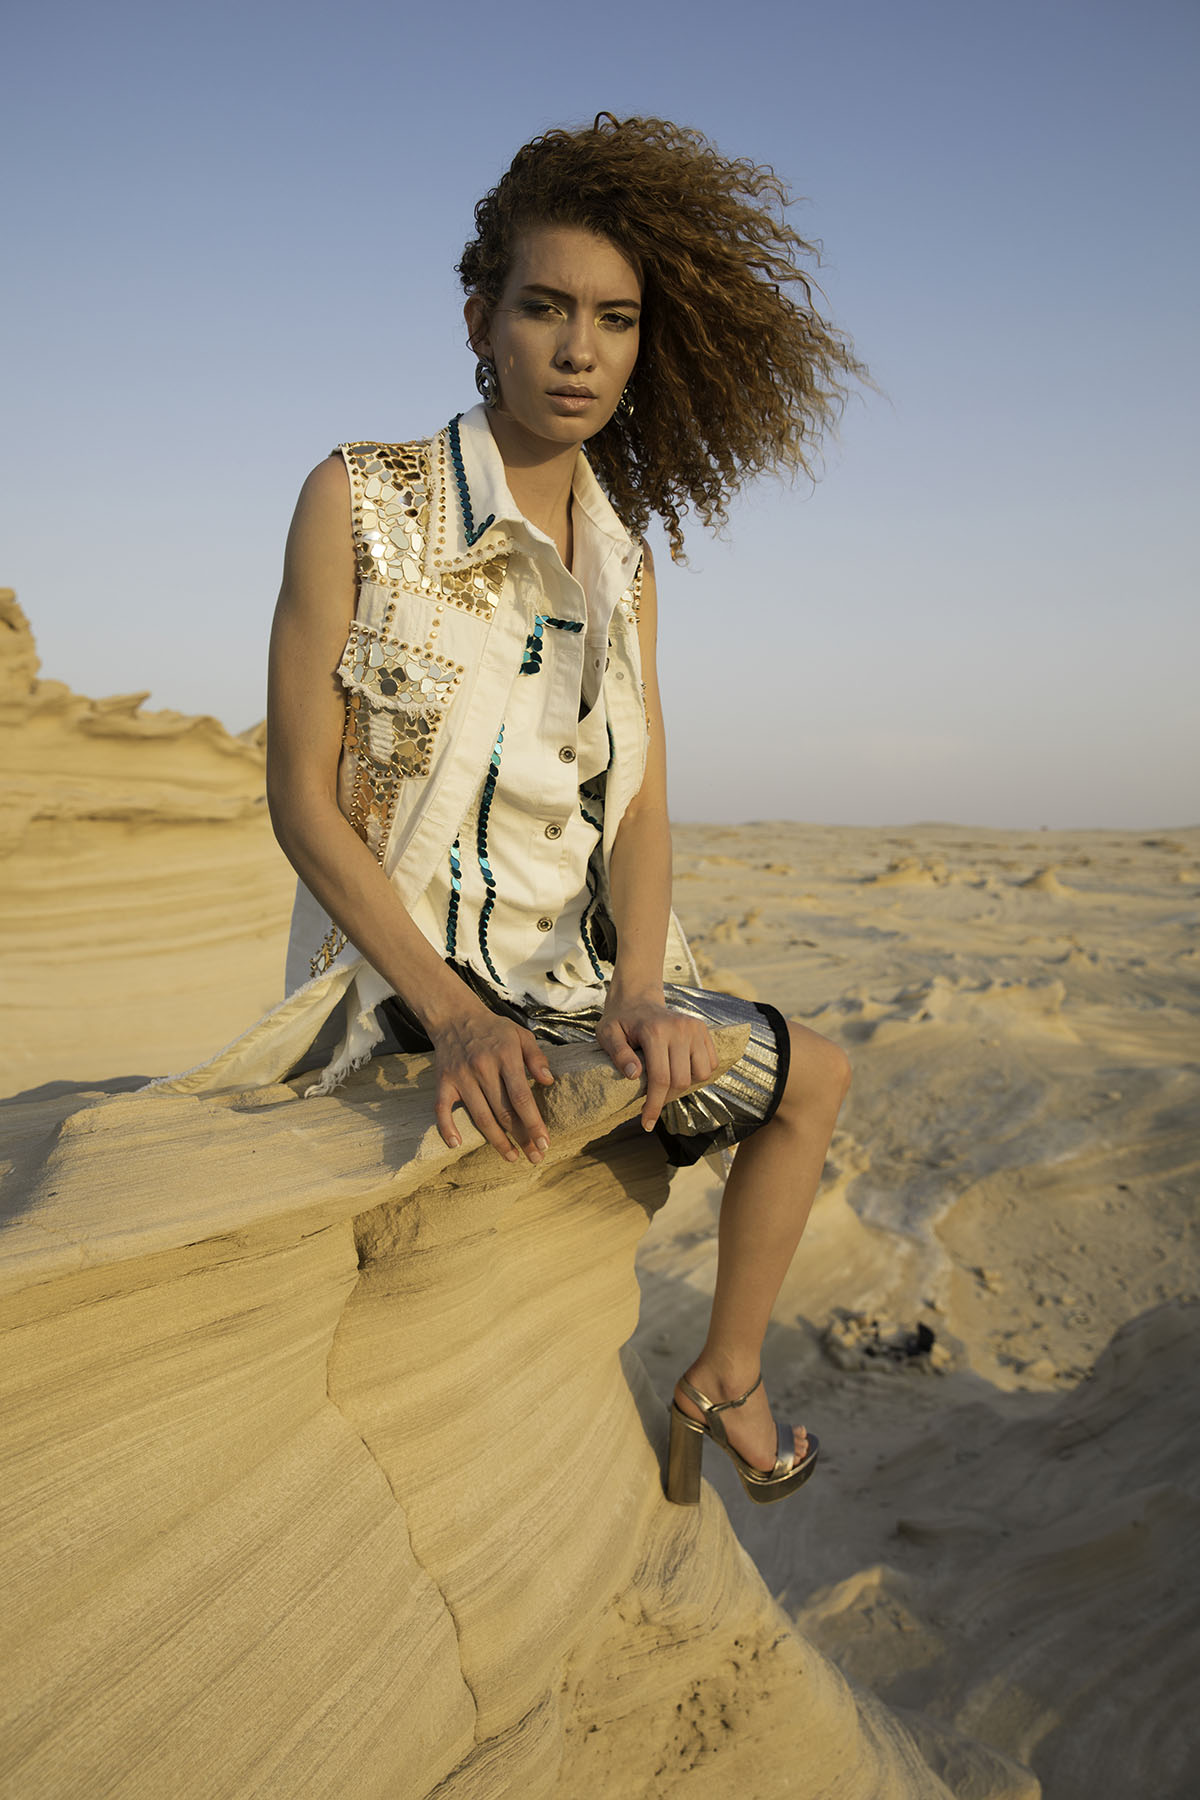 Model Jade from Niche Modeling agency in fashion editorial for Atelier Zuhra by Loesje Kessels Fashion Photographer Dubai